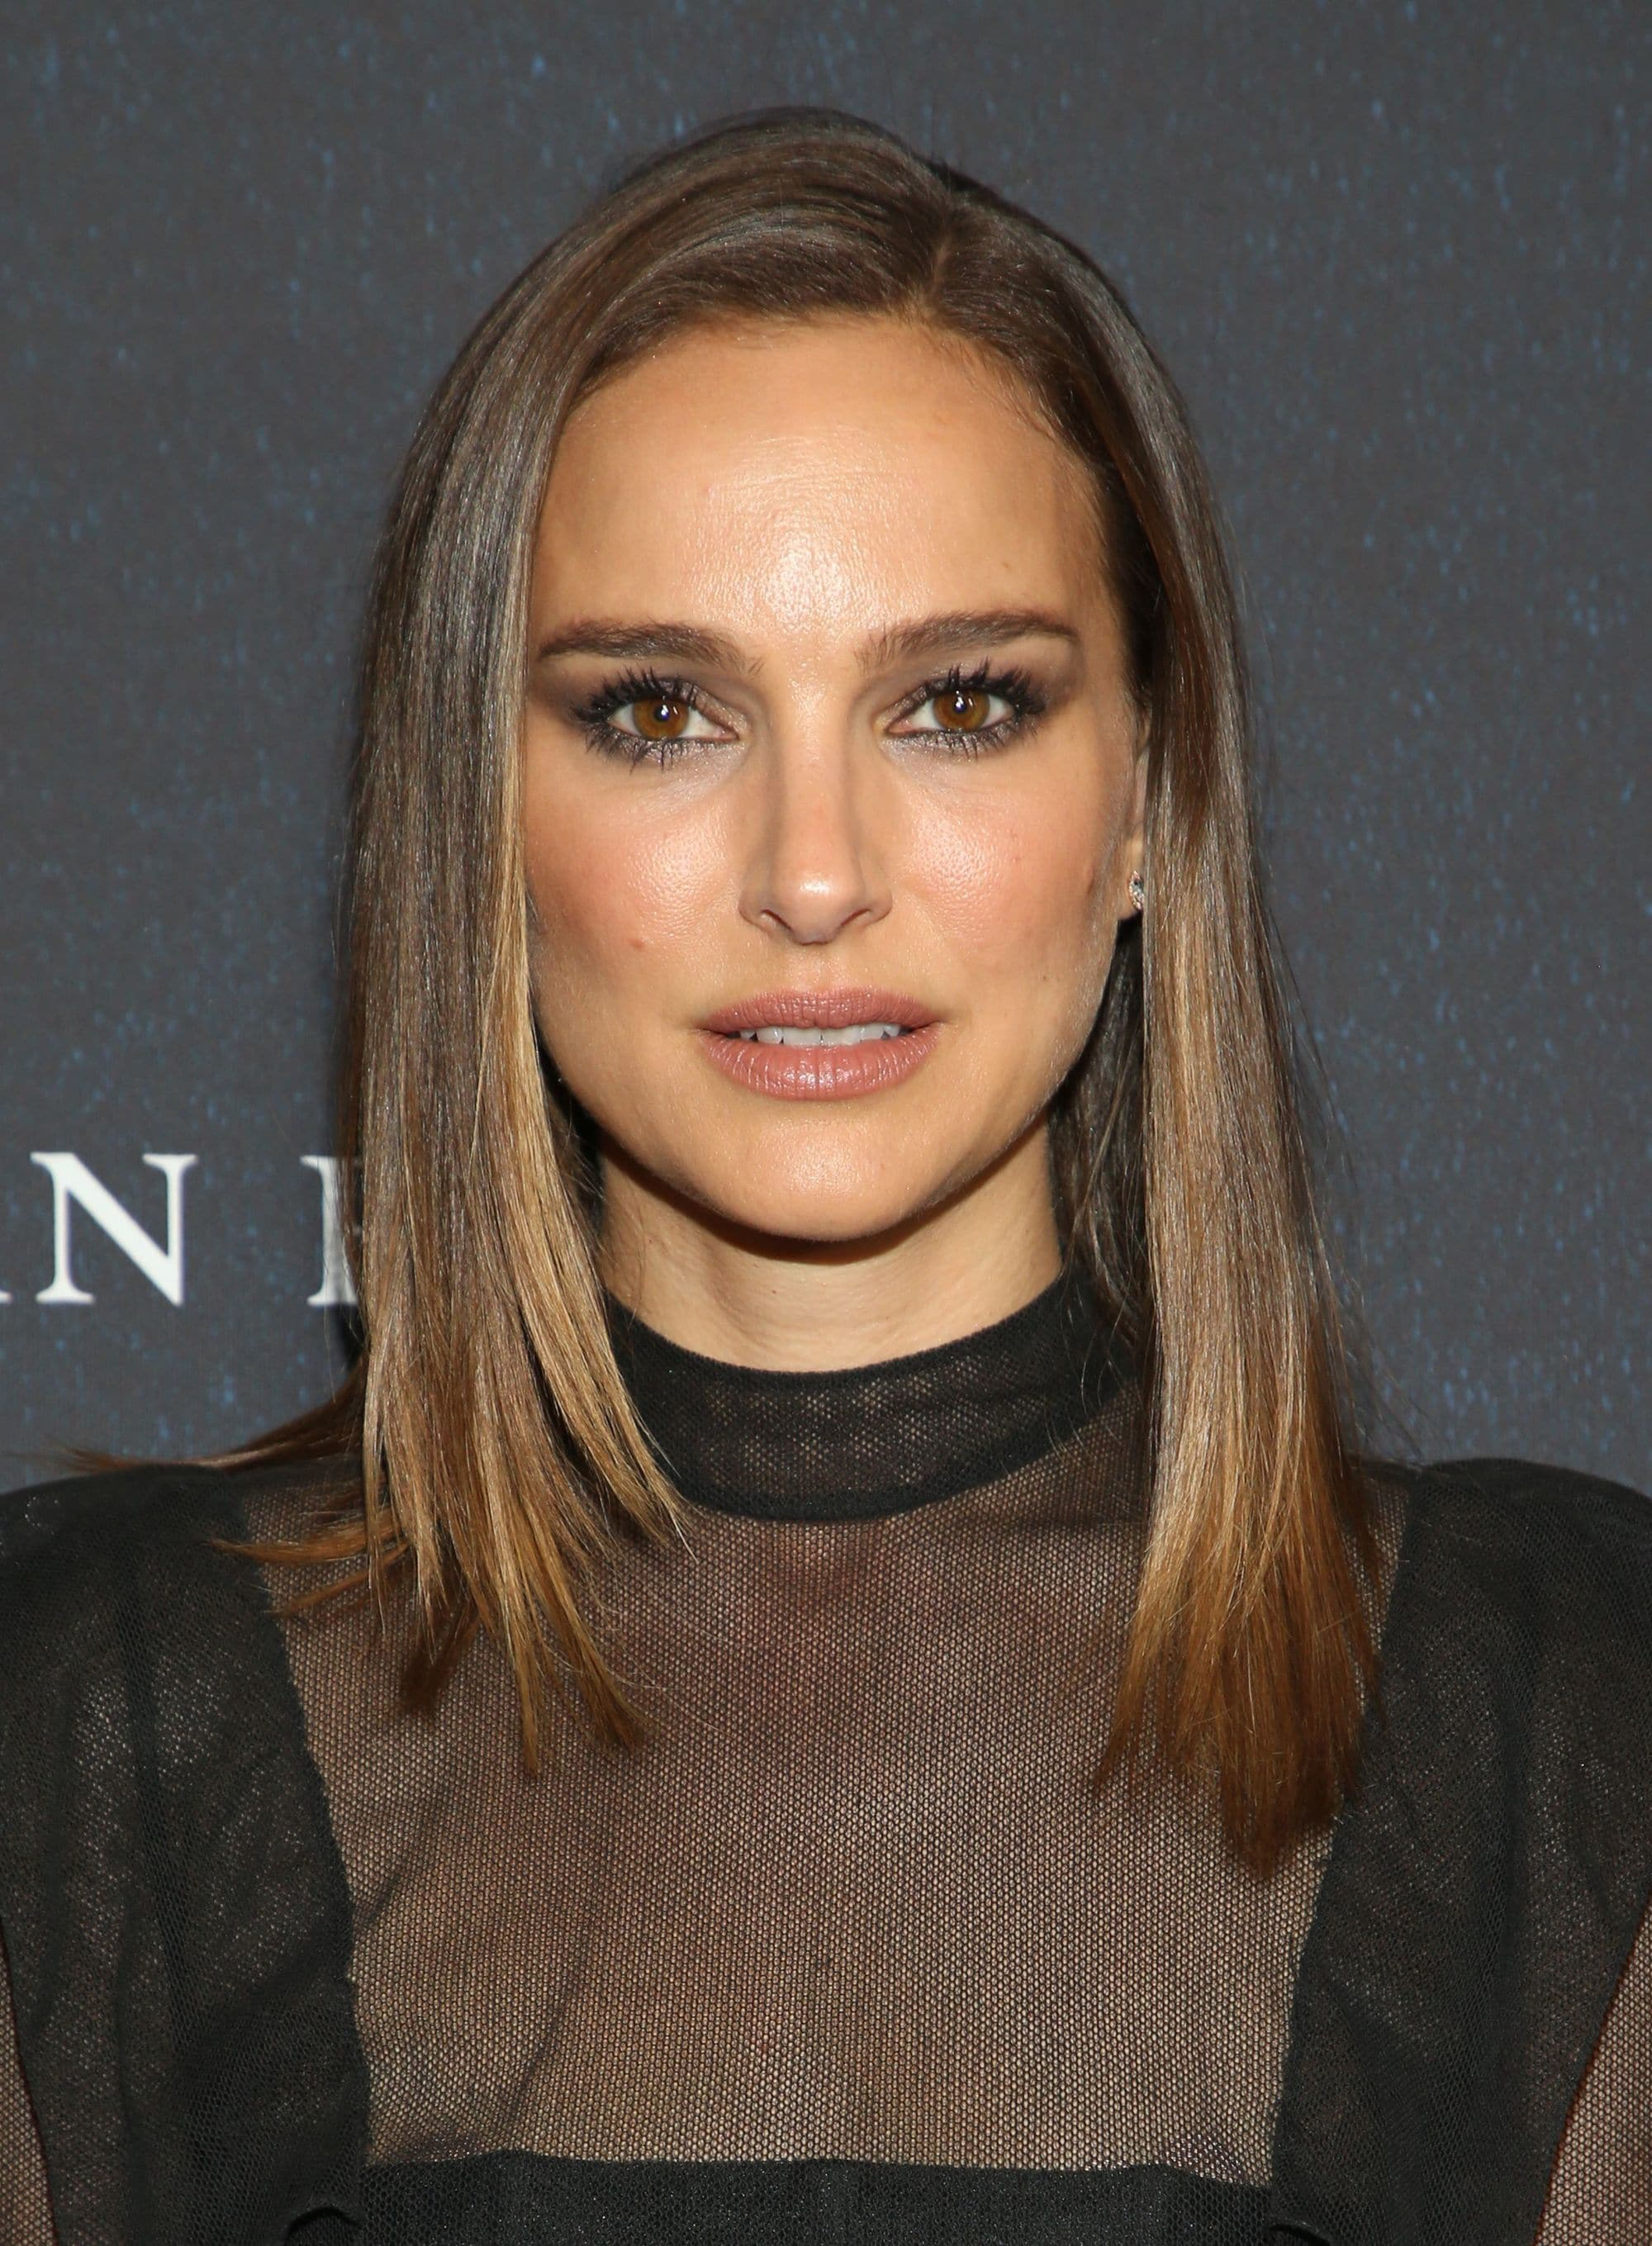 Haircuts for fine straight hair: Natalie Portman with shoulder length straight hair with face-framing layers